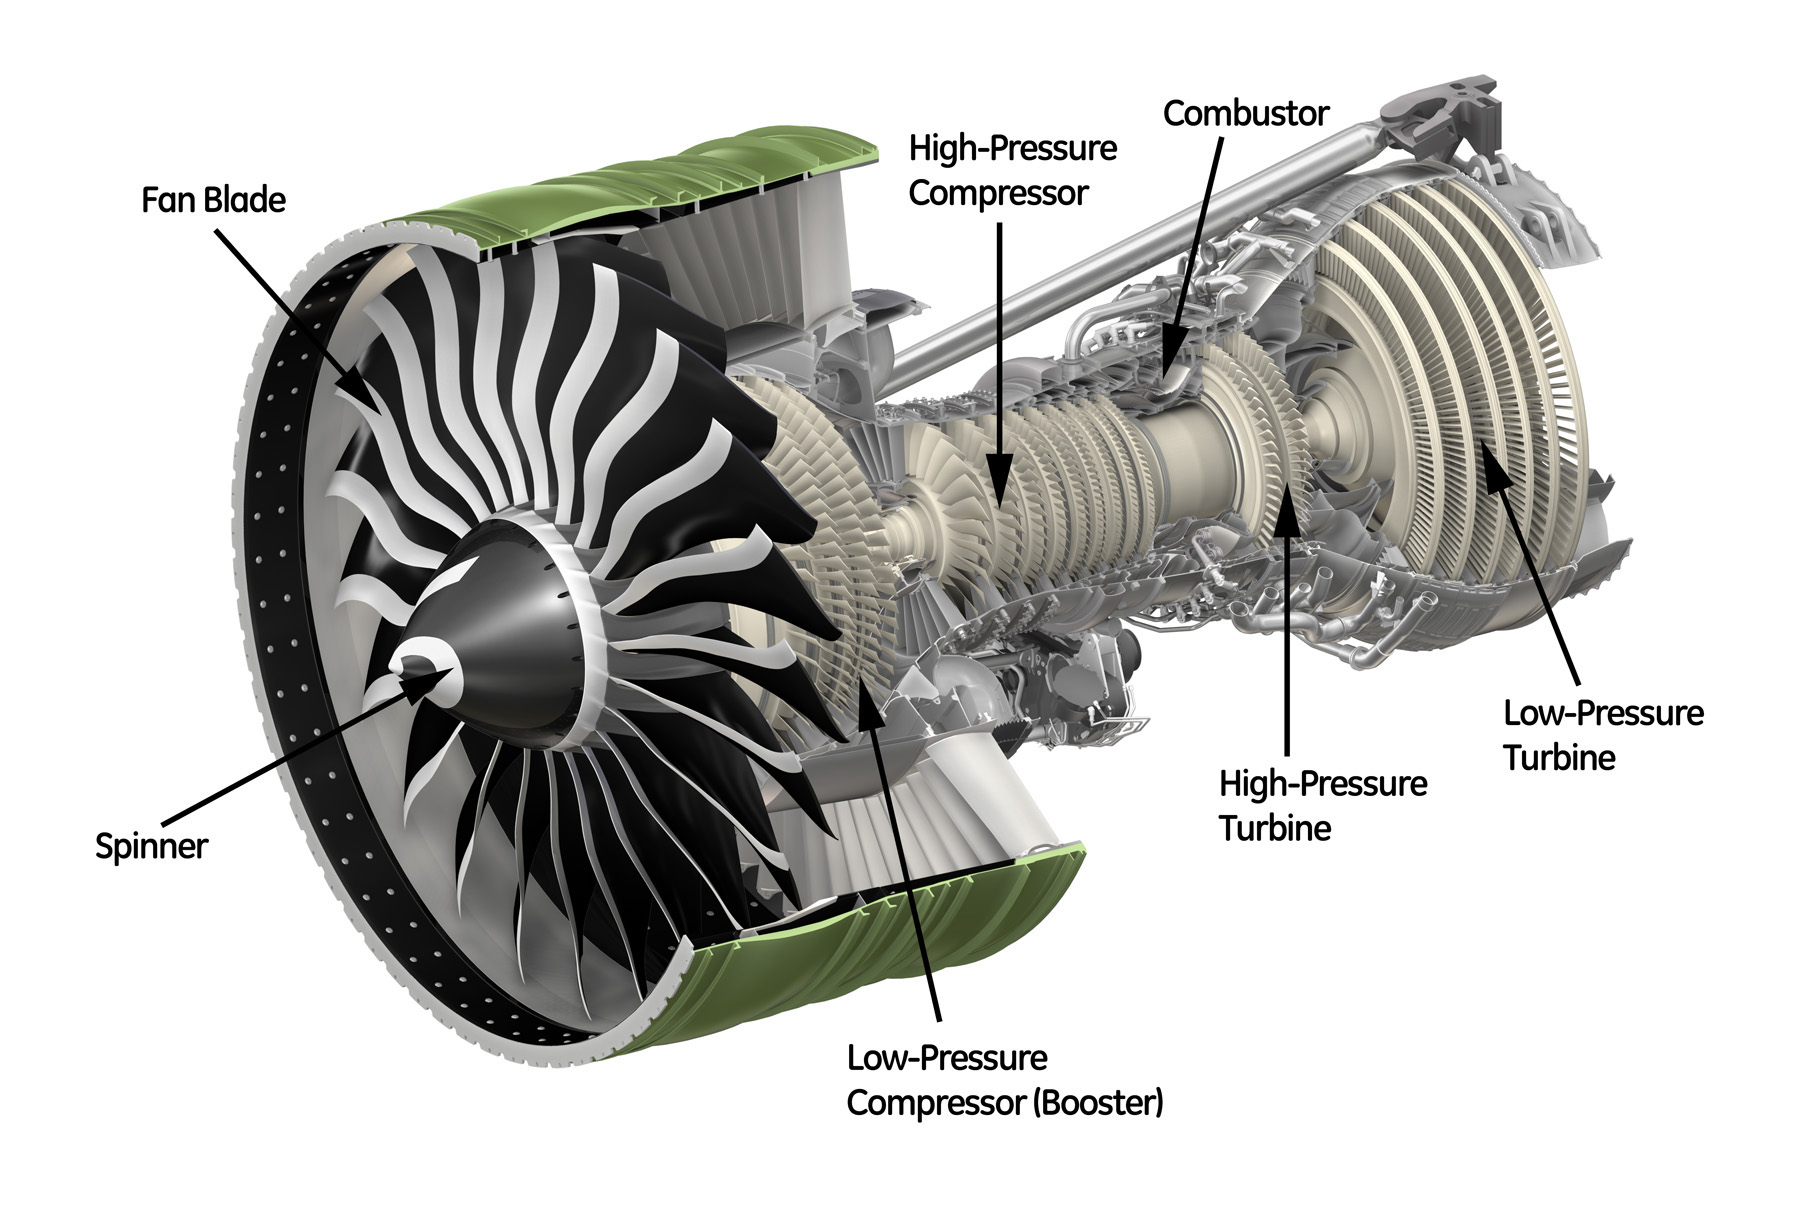 Variations Of Jet Engines. Ge90115b Turbofan Crosssection Photo Courtesy Of Ge Click On The To See High Resolution. Wiring. Diagram Of A Turbofan Jet Engine At Scoala.co